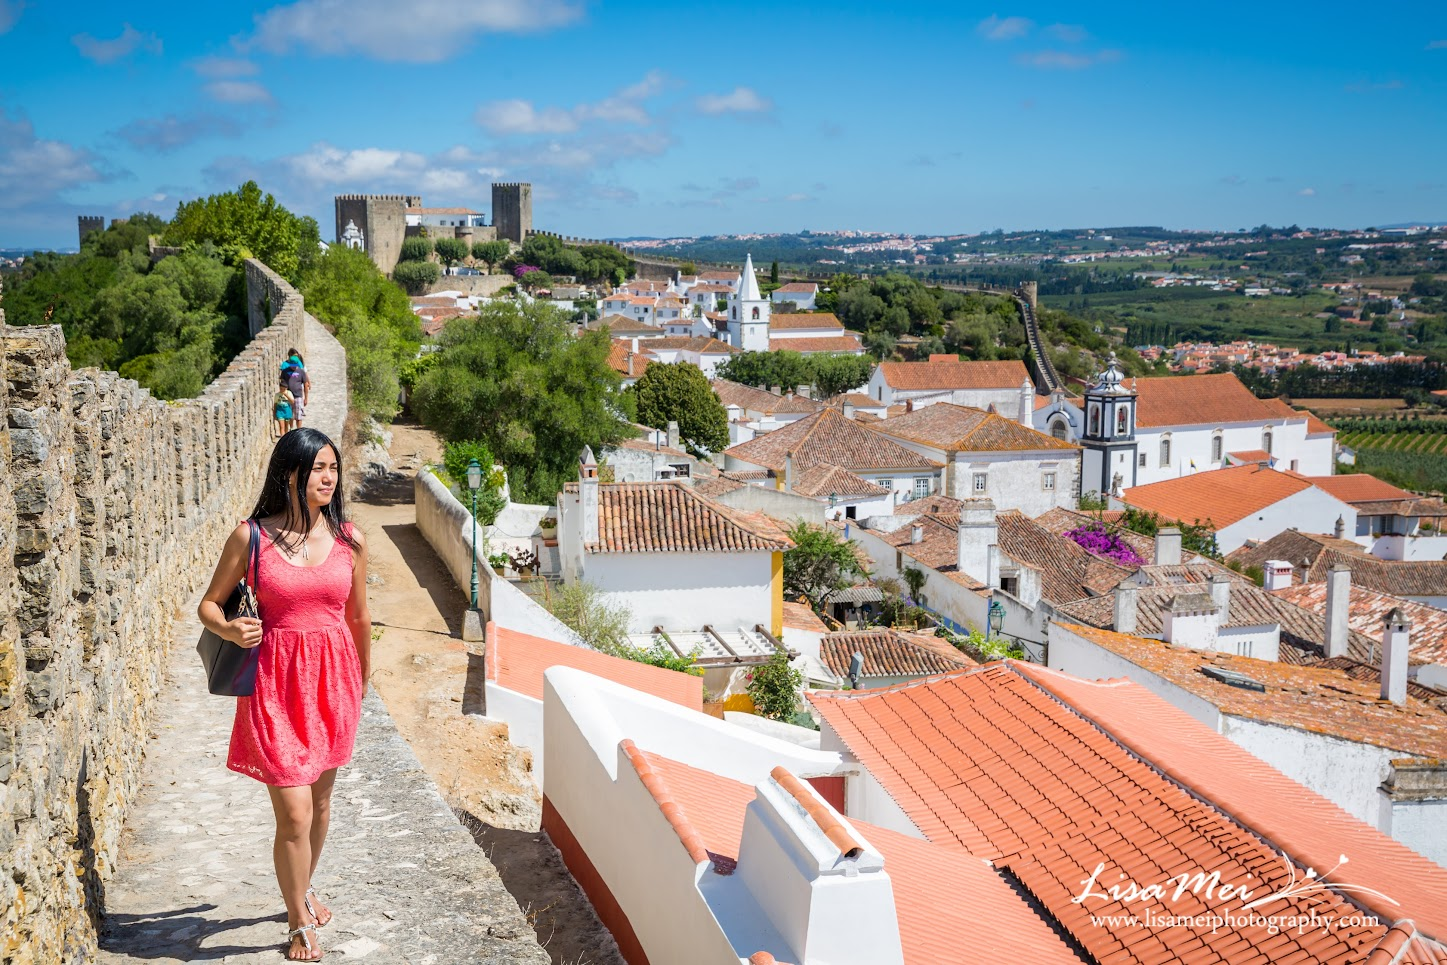 The pictureque village of Obidos